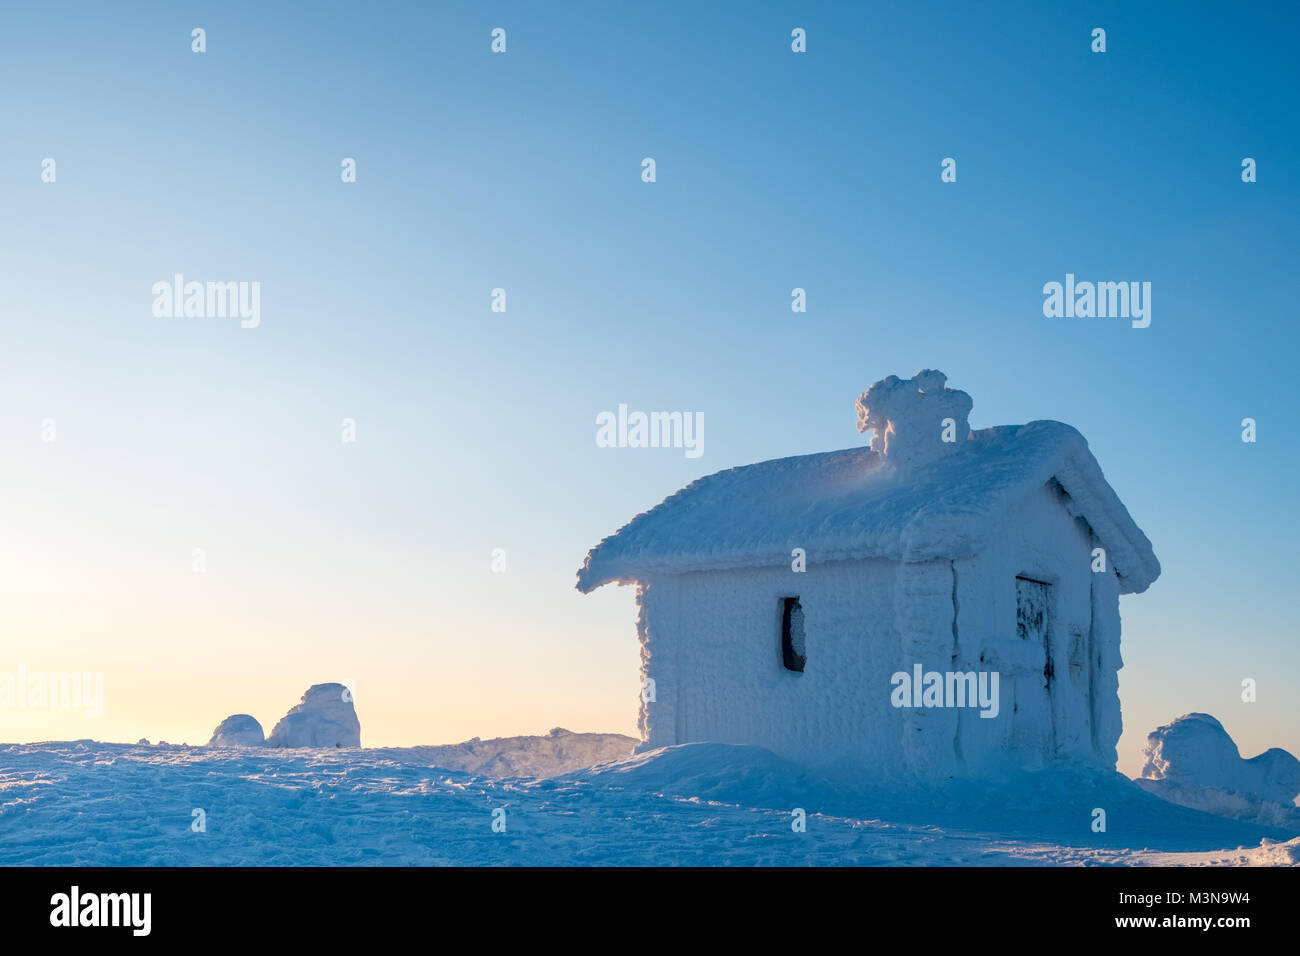 A snow encrusted cabin on the summit of a hill in Finland Stock Photo